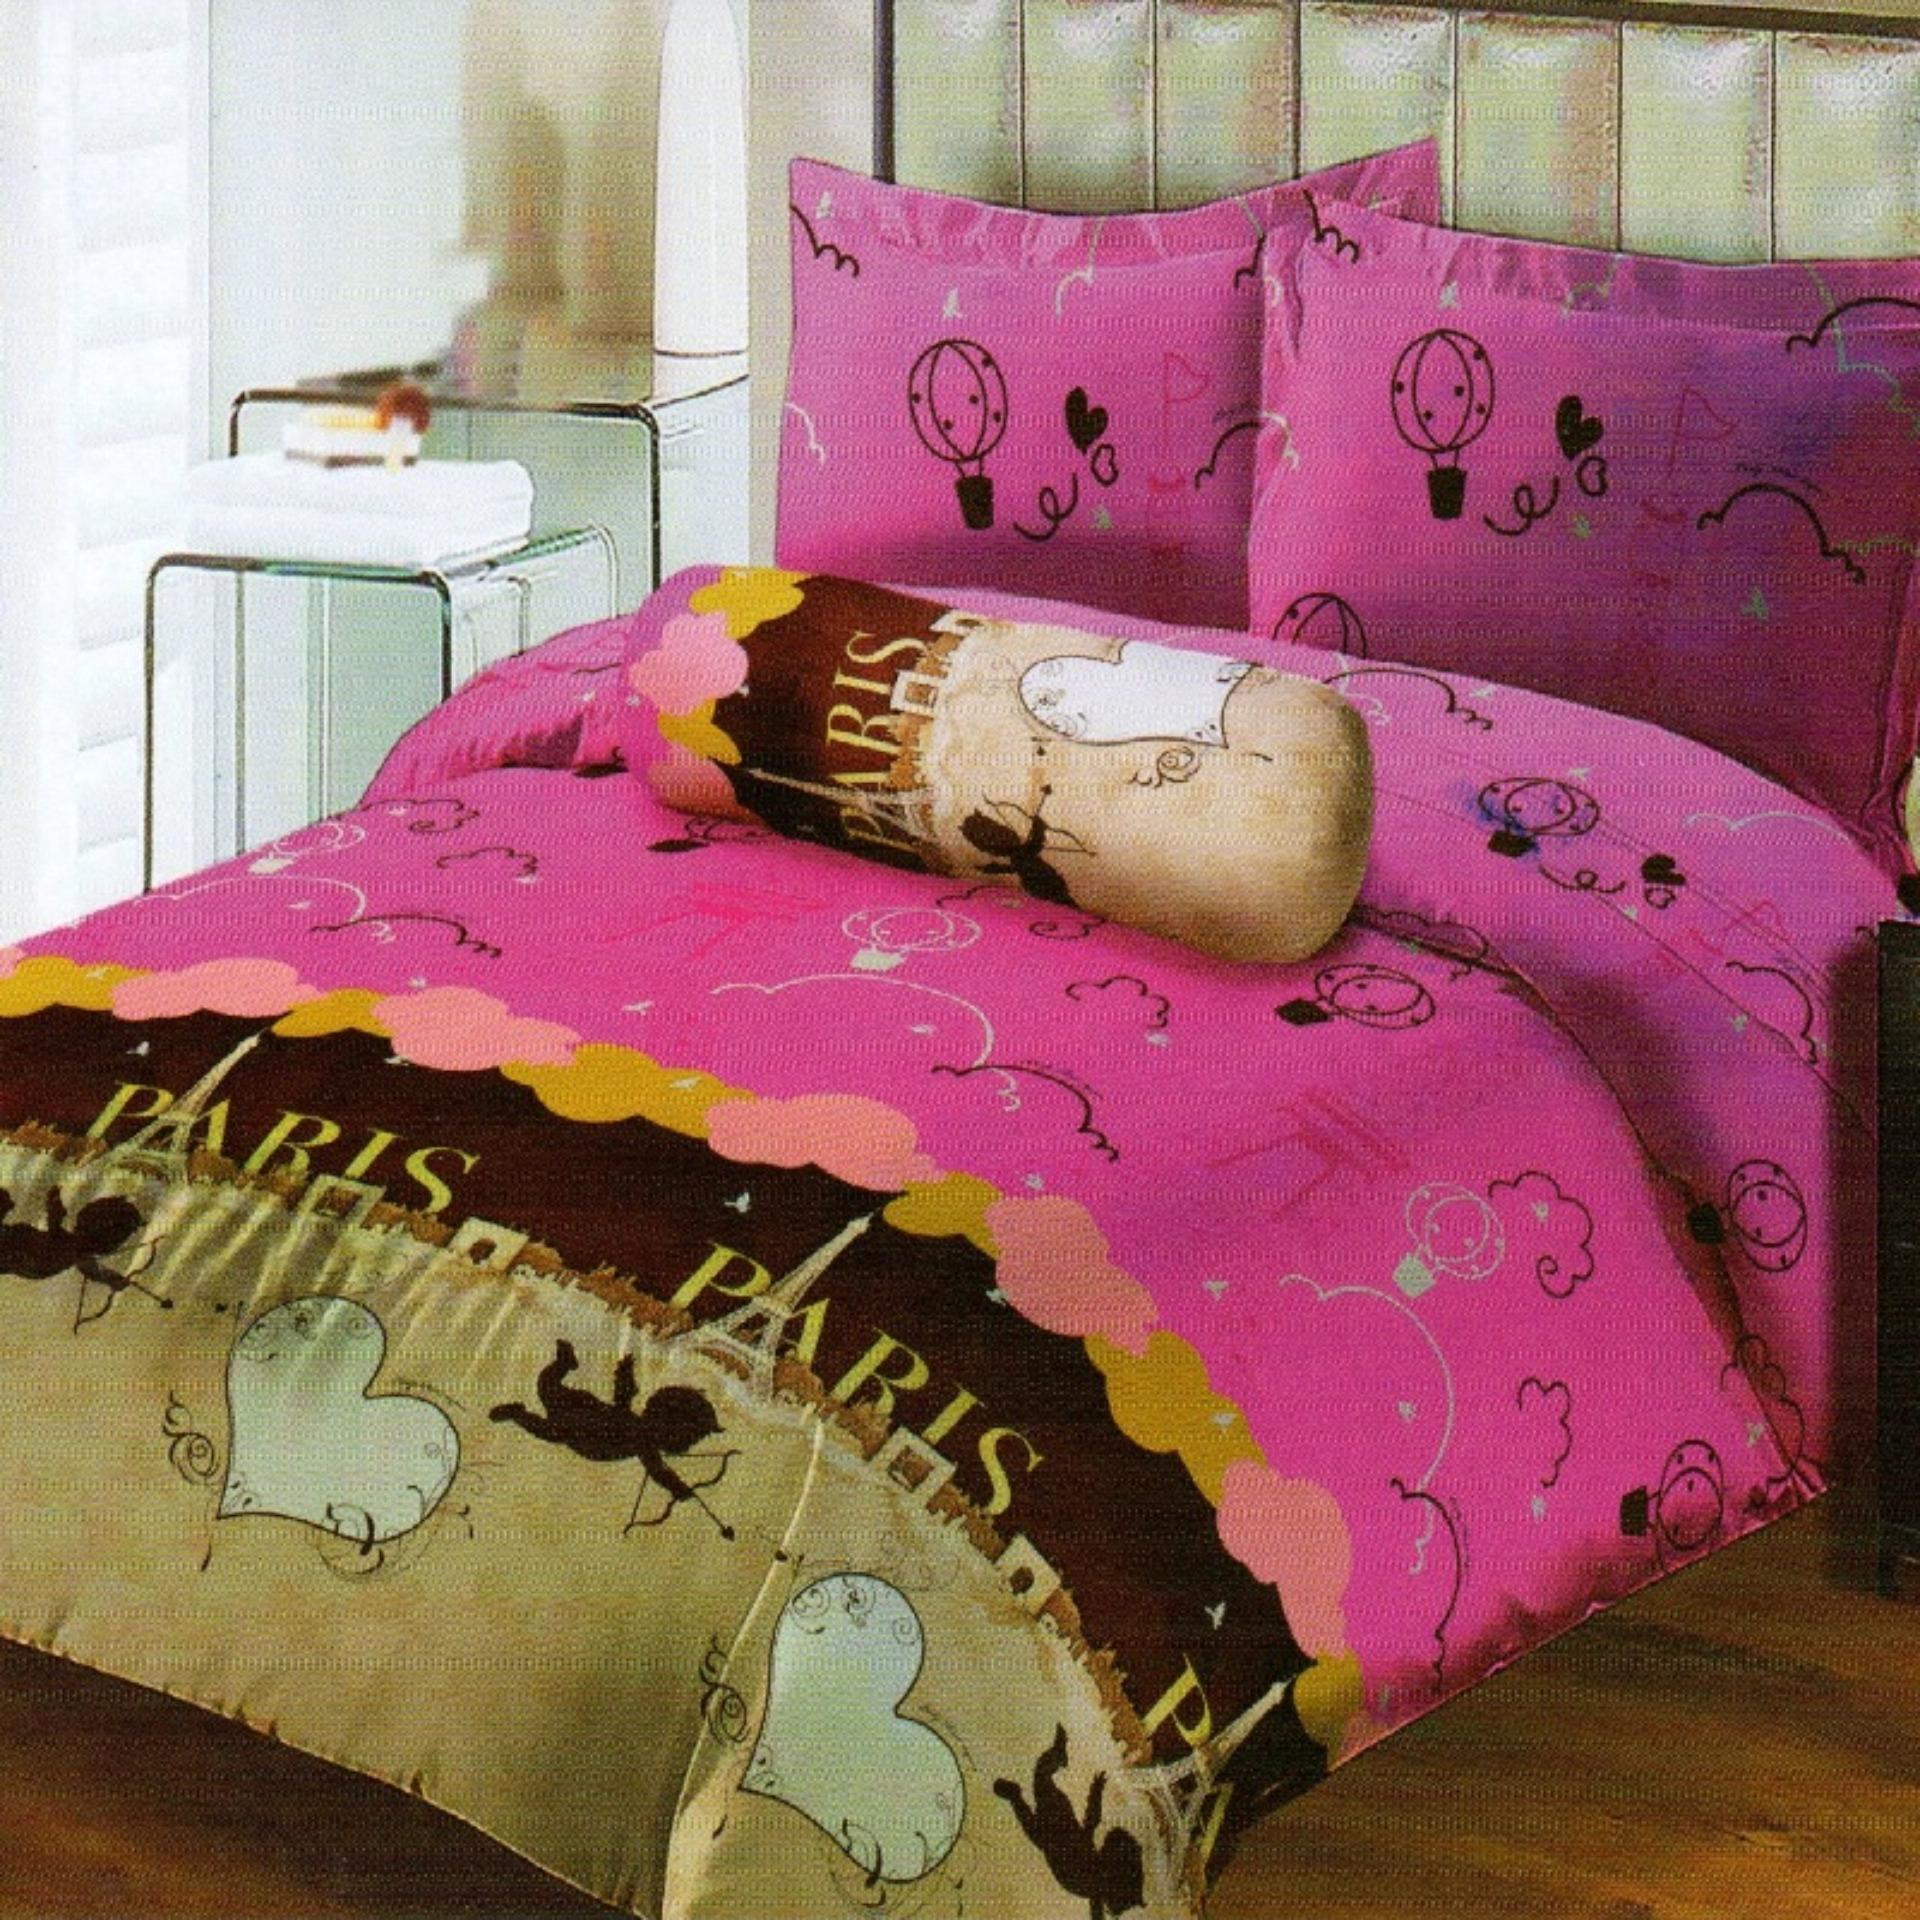 Harga Lady Rose Sprei Queen Motif Love In Paris 160X200 Cm Satu Set